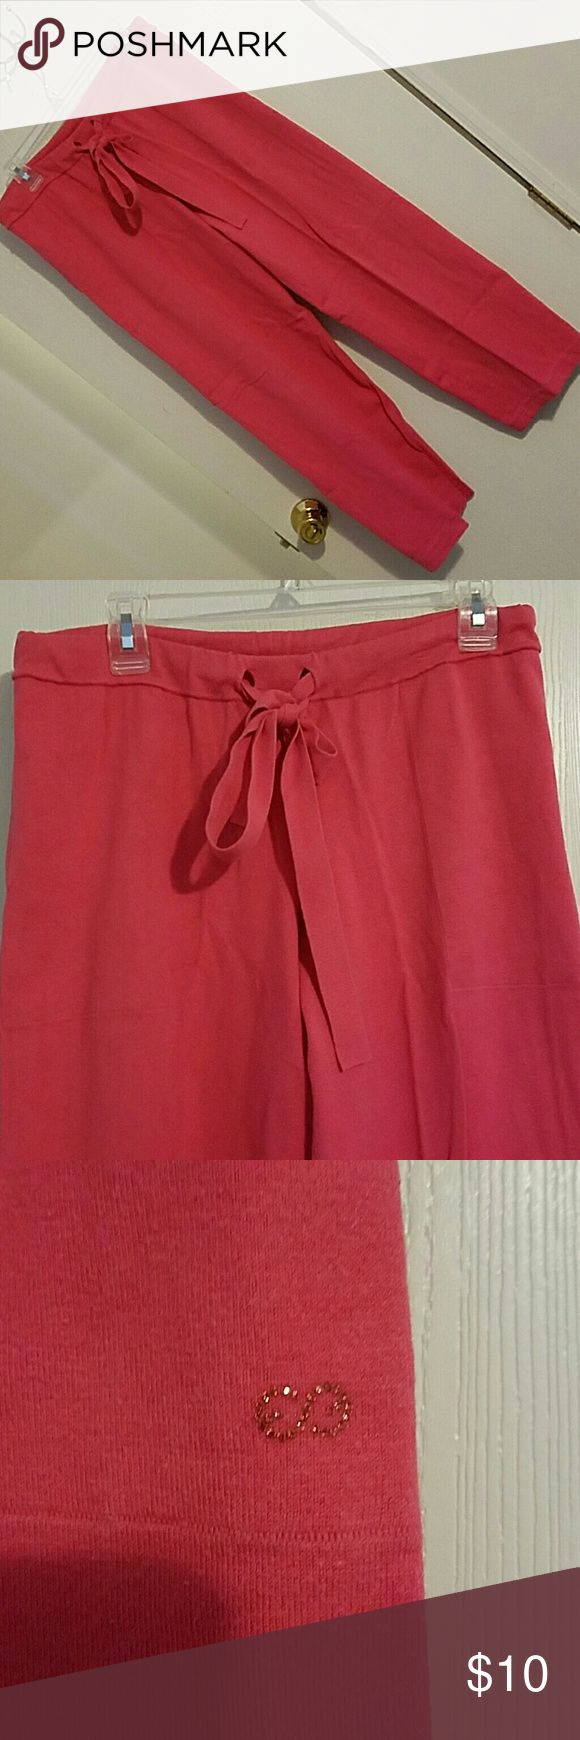 Escada Sport warm up pants These are supwr cute on. They are also very comfy. Escada Sport Pants Track Pants & Joggers